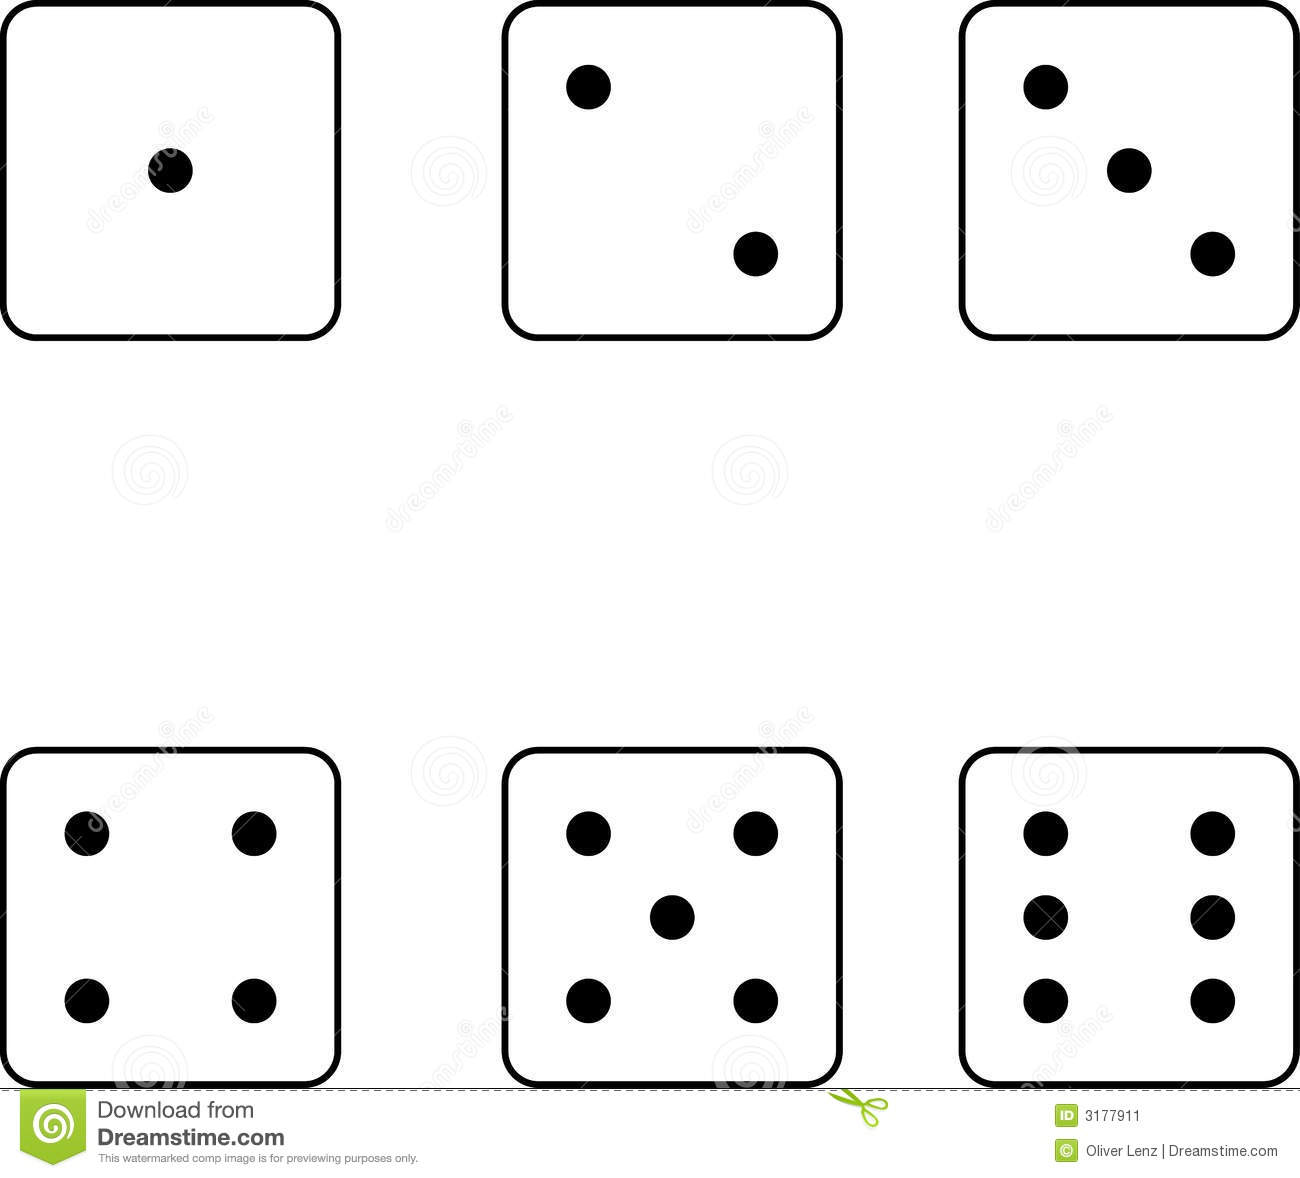 ... dice showing different numbers of spots isolated on white background